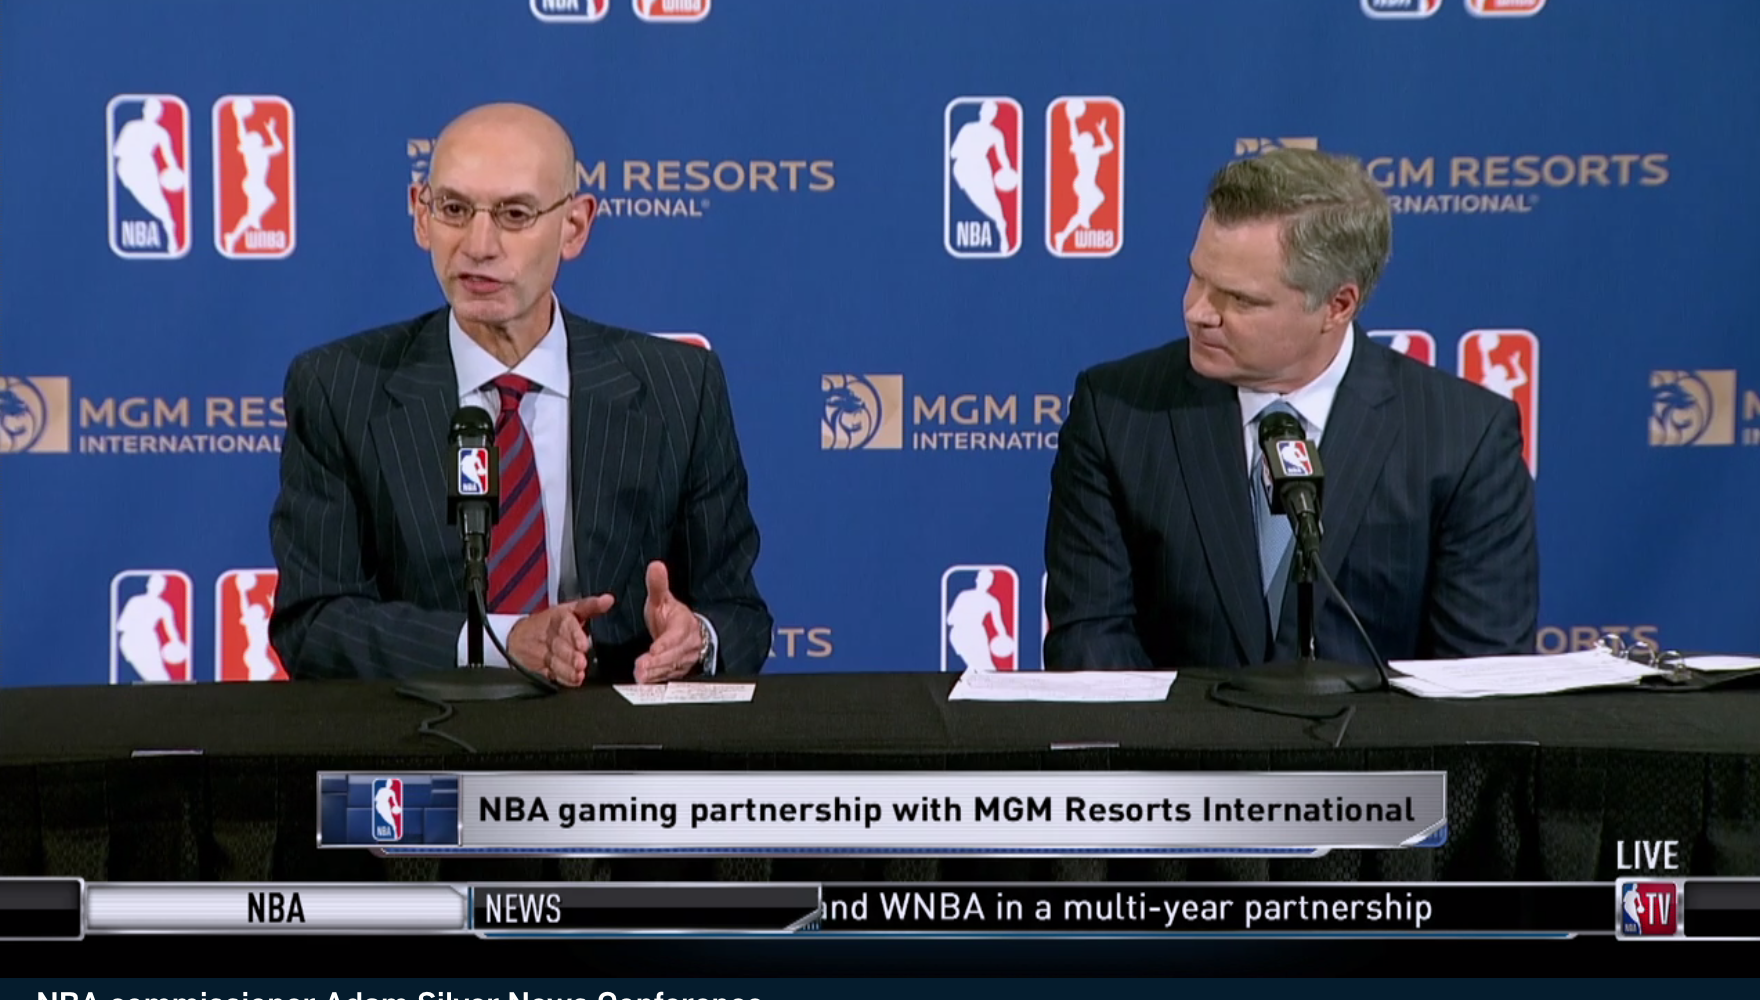 NBA strikes deal with MGM Resorts to become 'gaming partner'